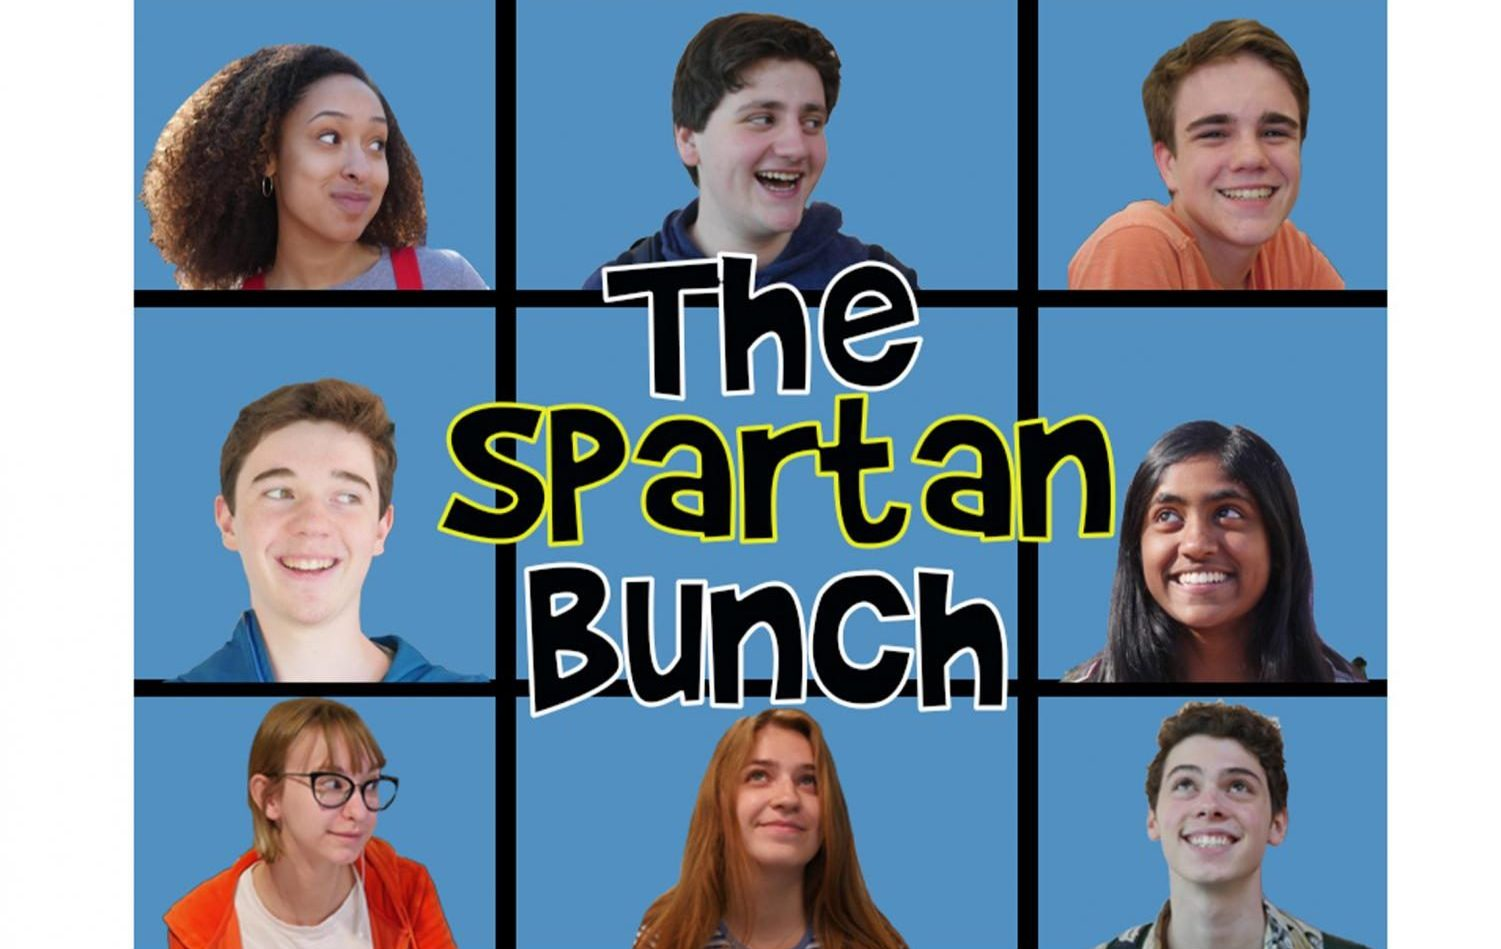 Unlike The Brady Bunch, SPA students need to bunch together and reach out to everyone, not just students in their grades.